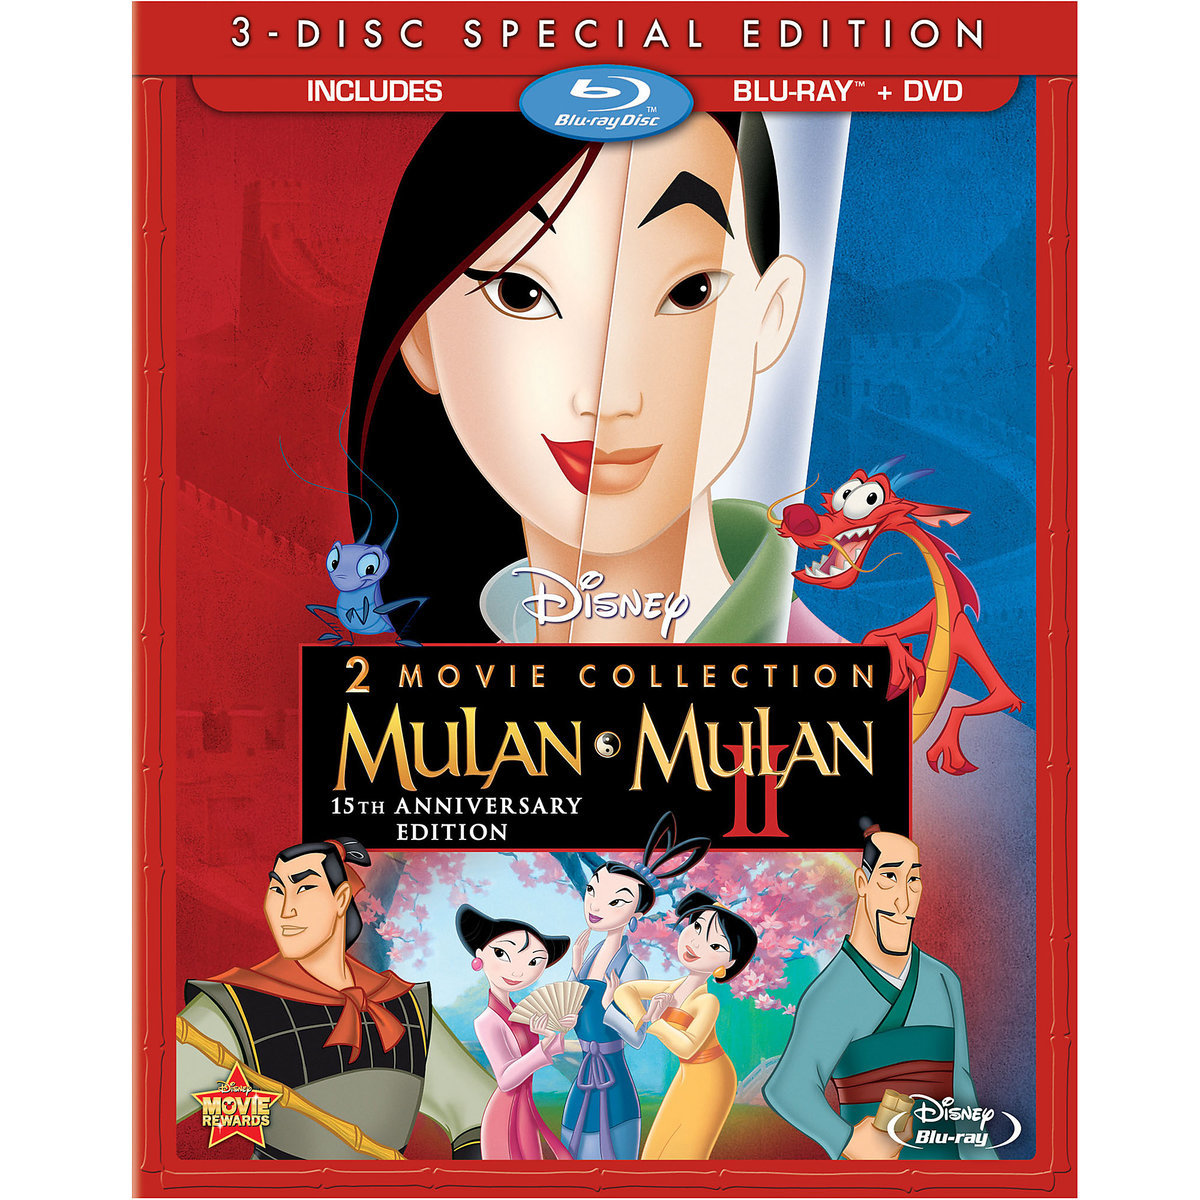 Mulan 2 Movie Collection (15th Anniversary Edition) (Blu-ray + DVD)